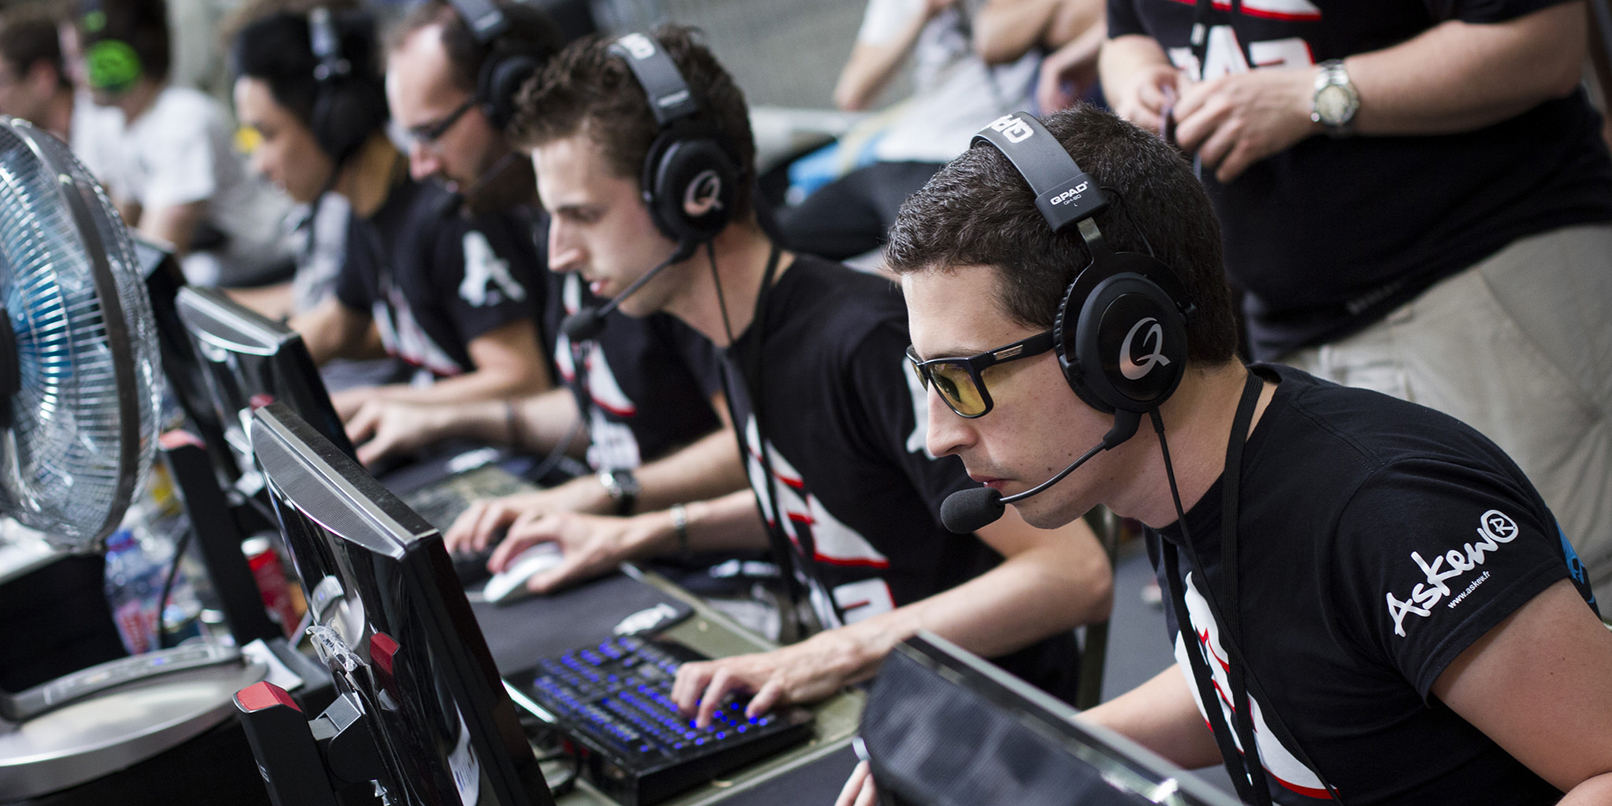 Report suggests millennials like esports as much as 'real' sports